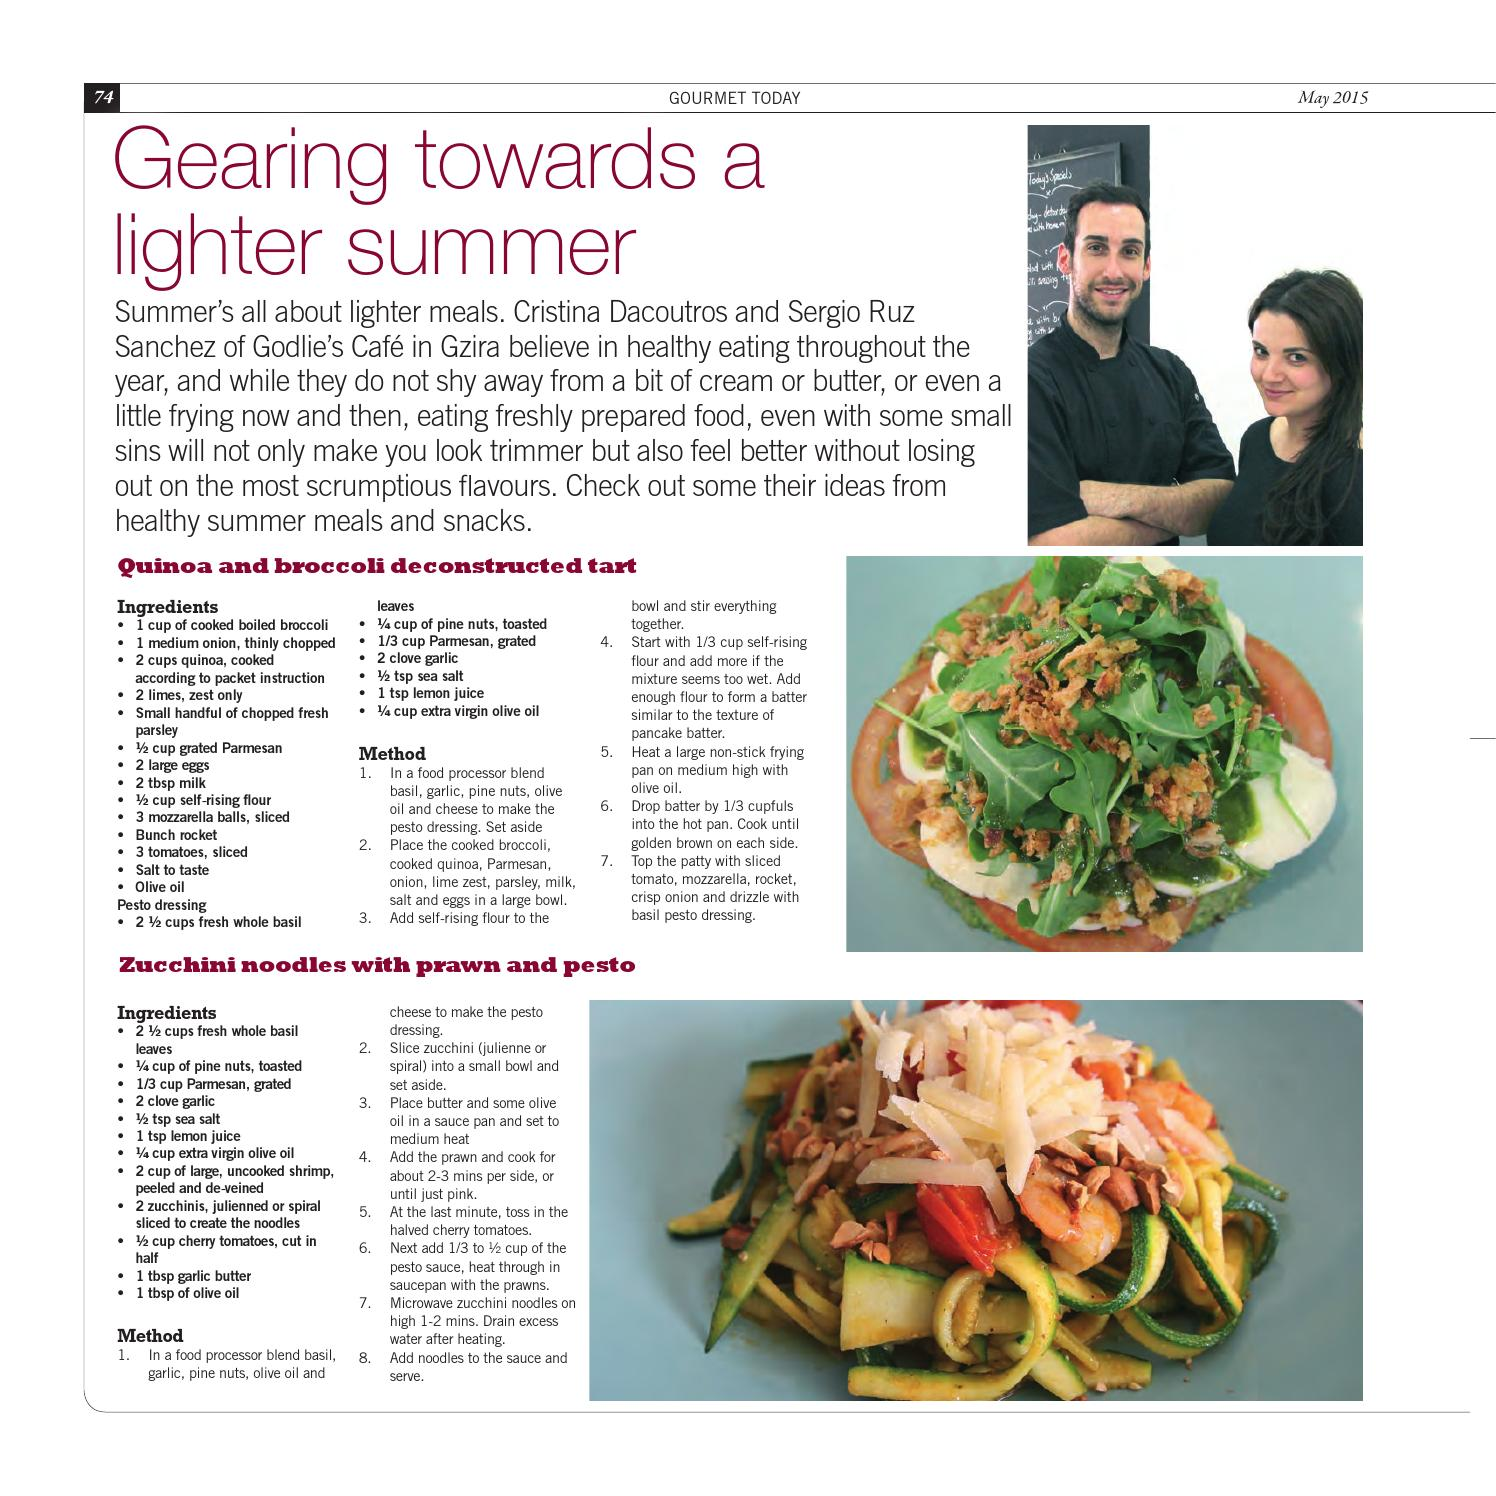 35ffef58451 Gourmet Today Issue 34 by MaltaToday - issuu